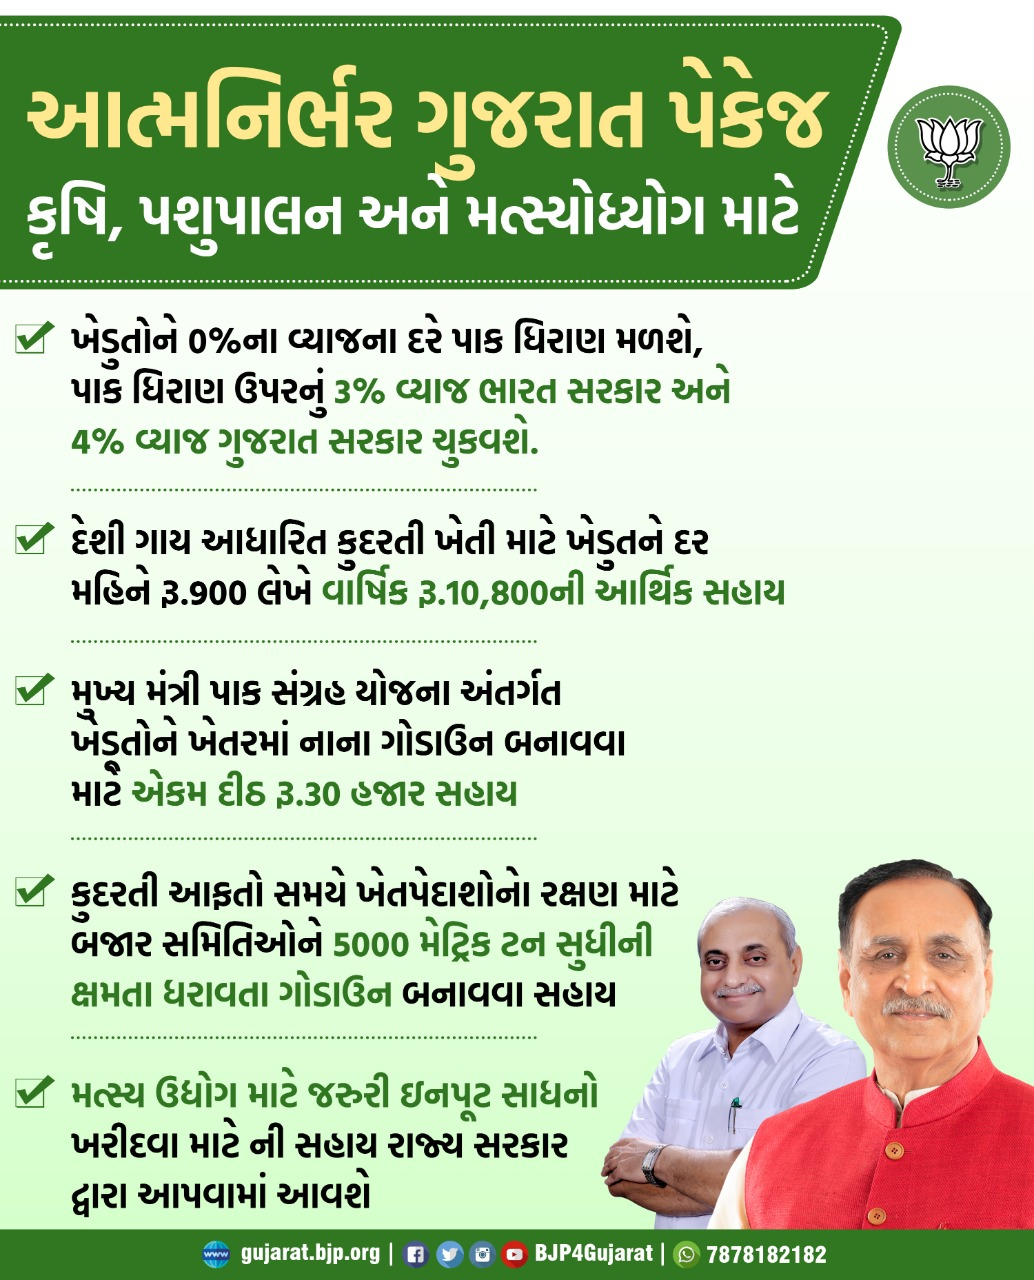 Atmanirbhar Gujarat Cow sahay per month Rs 900